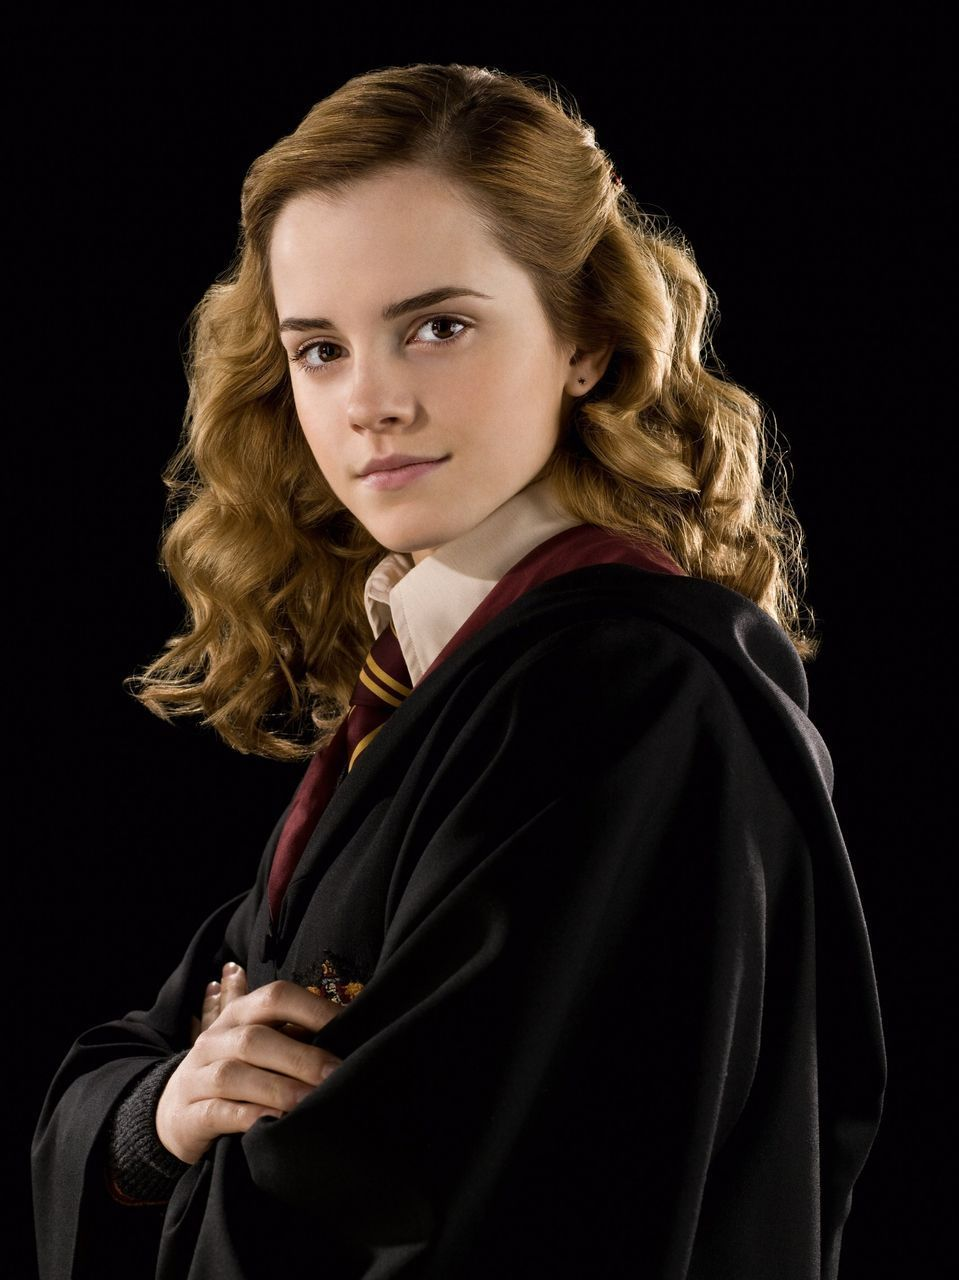 harry potter con hermione granger: